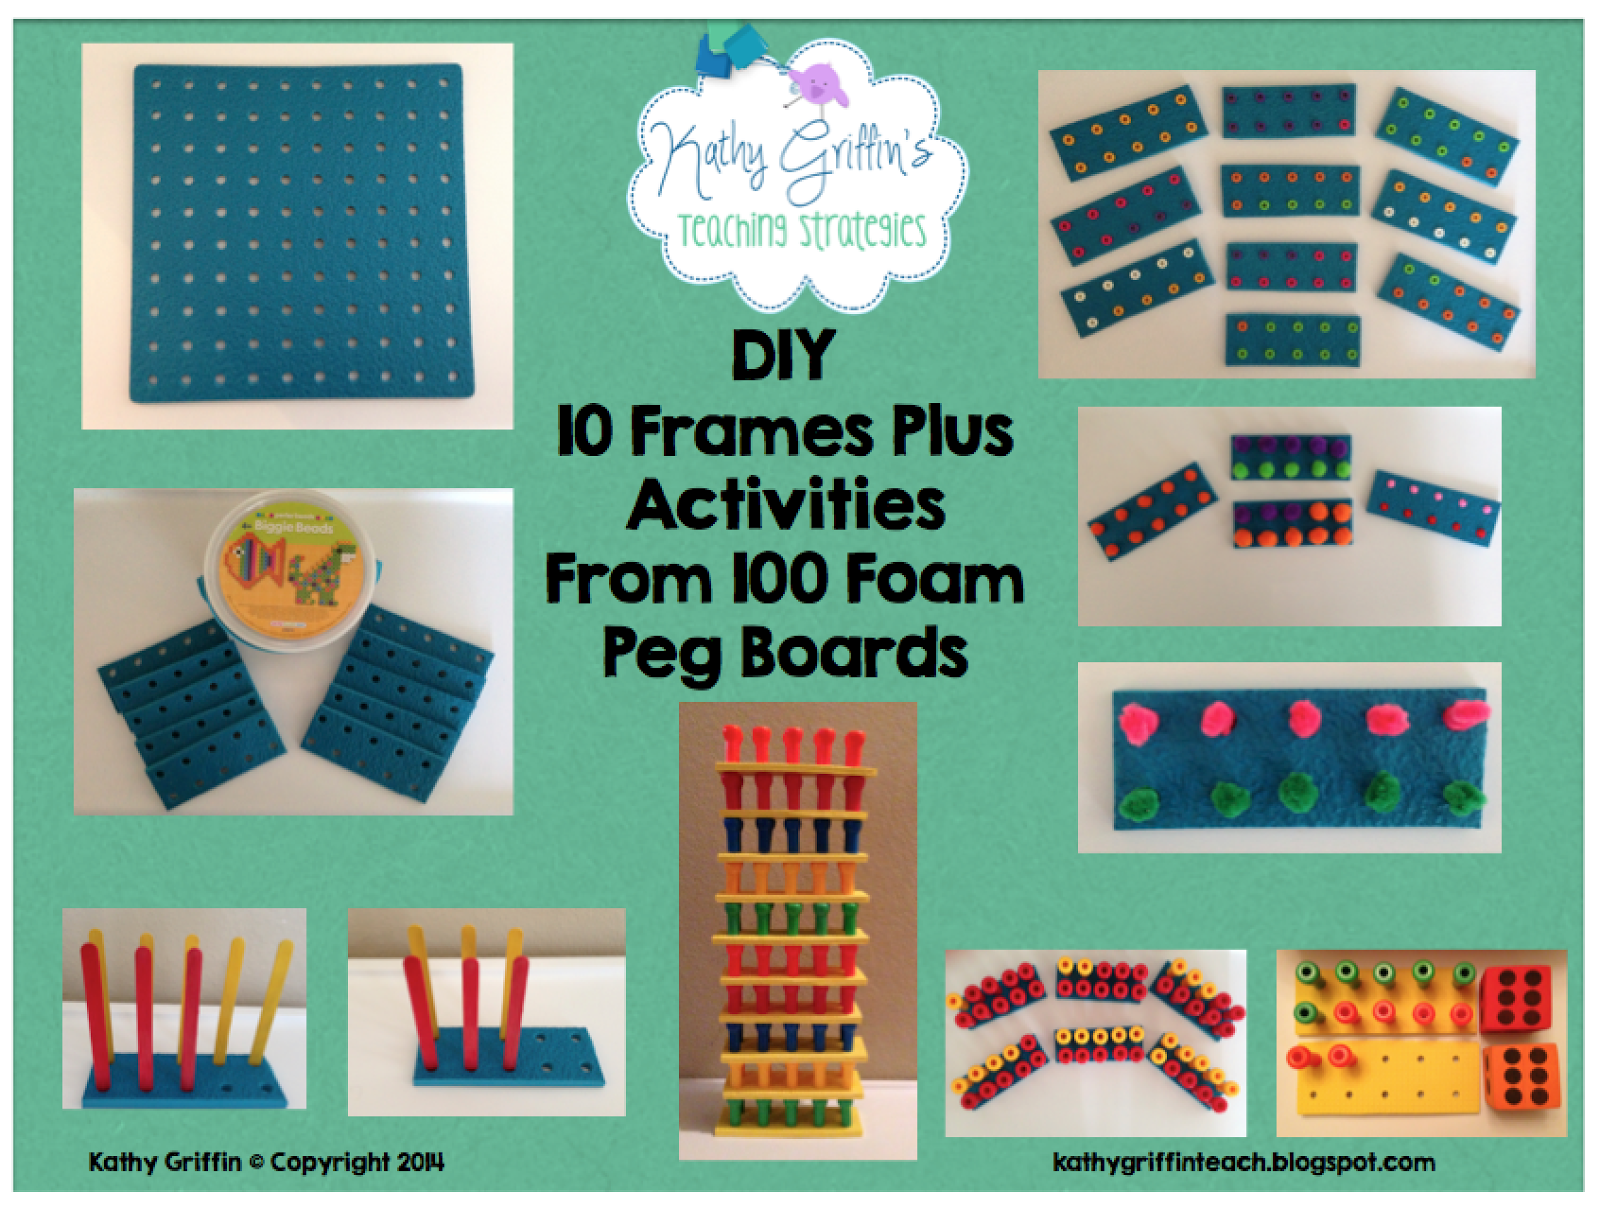 Kathy Griffin\'s Teaching Strategies: DIY Foam 10 Frames